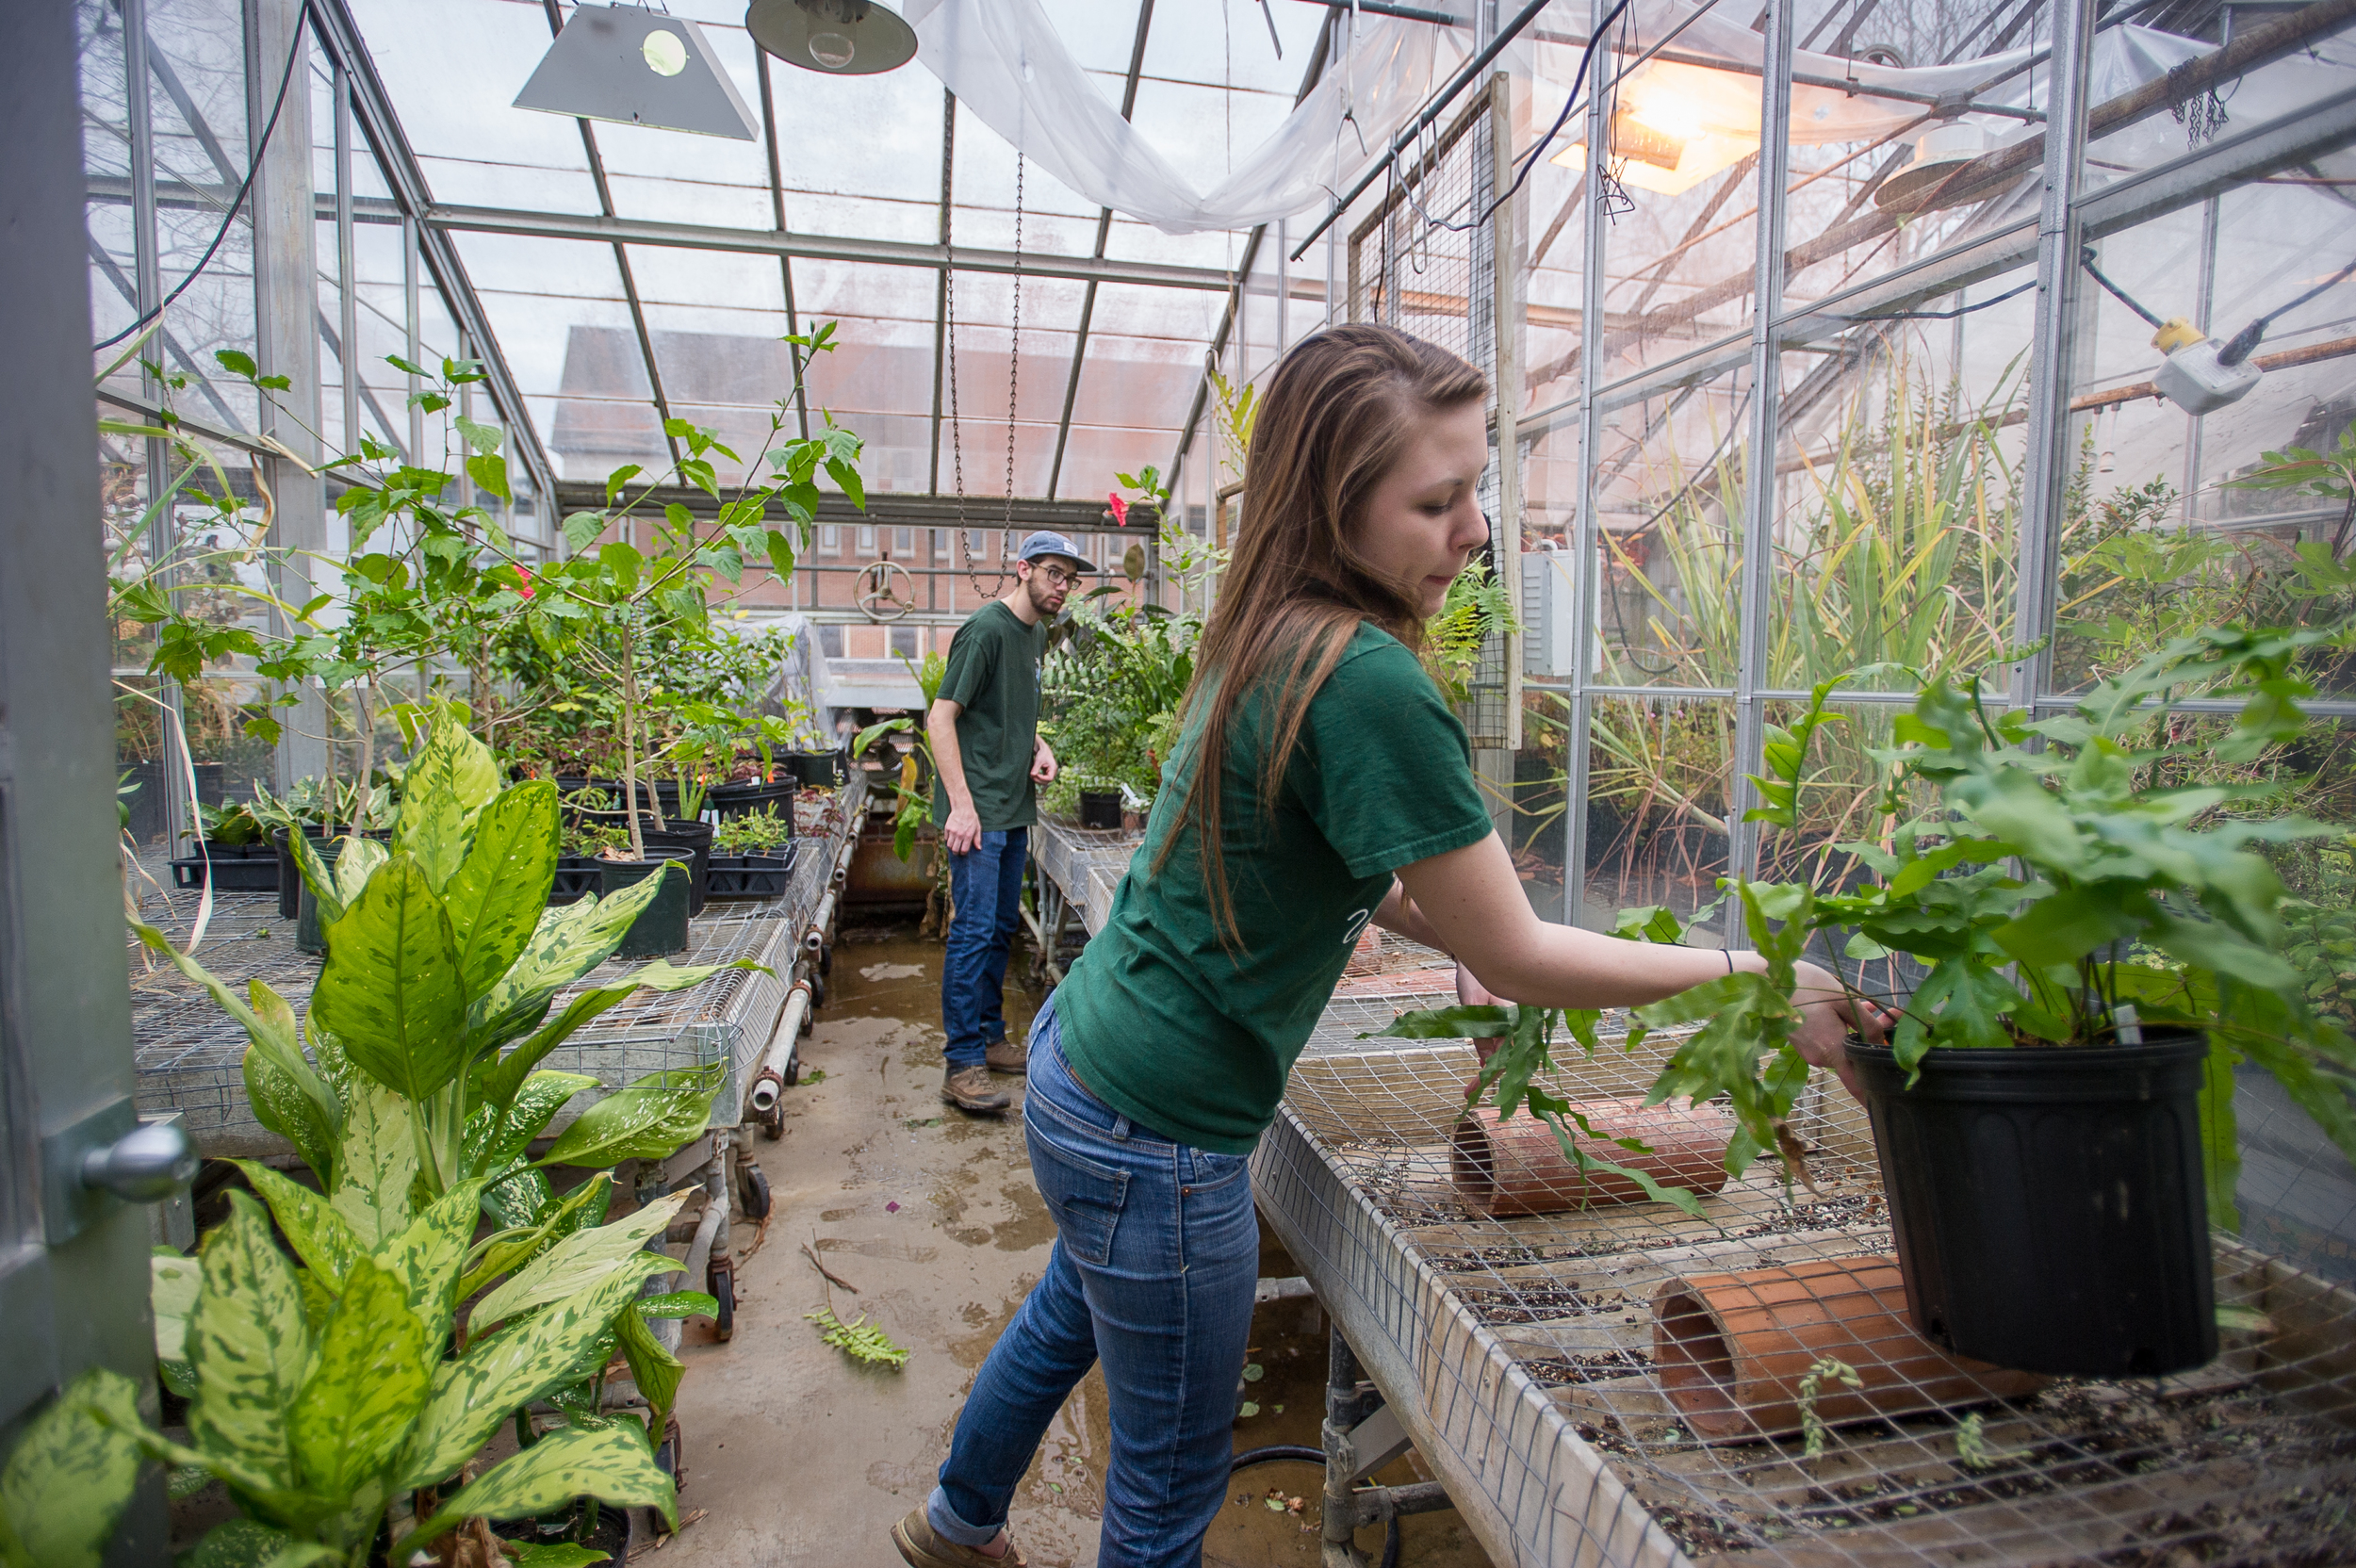 """Bethany Zumwalde, an Ohio University graduate student studying plant biology, and Jacob Mullins, a senior studying plant biology, move plants to various parts of the greenhouse located behind Scott Quadrangle in Athens, Ohio, on April 6, 2015. The students work in the greenhouse to supplement their educational experience in their field of study. """"Being in the greenhouse is an overwhelming sensory experience because you get the opportunity to see and smell hundreds of different plants from all over the world,"""" says Zumwalde. (©2015 Sarah Stier for VICO 2390)"""